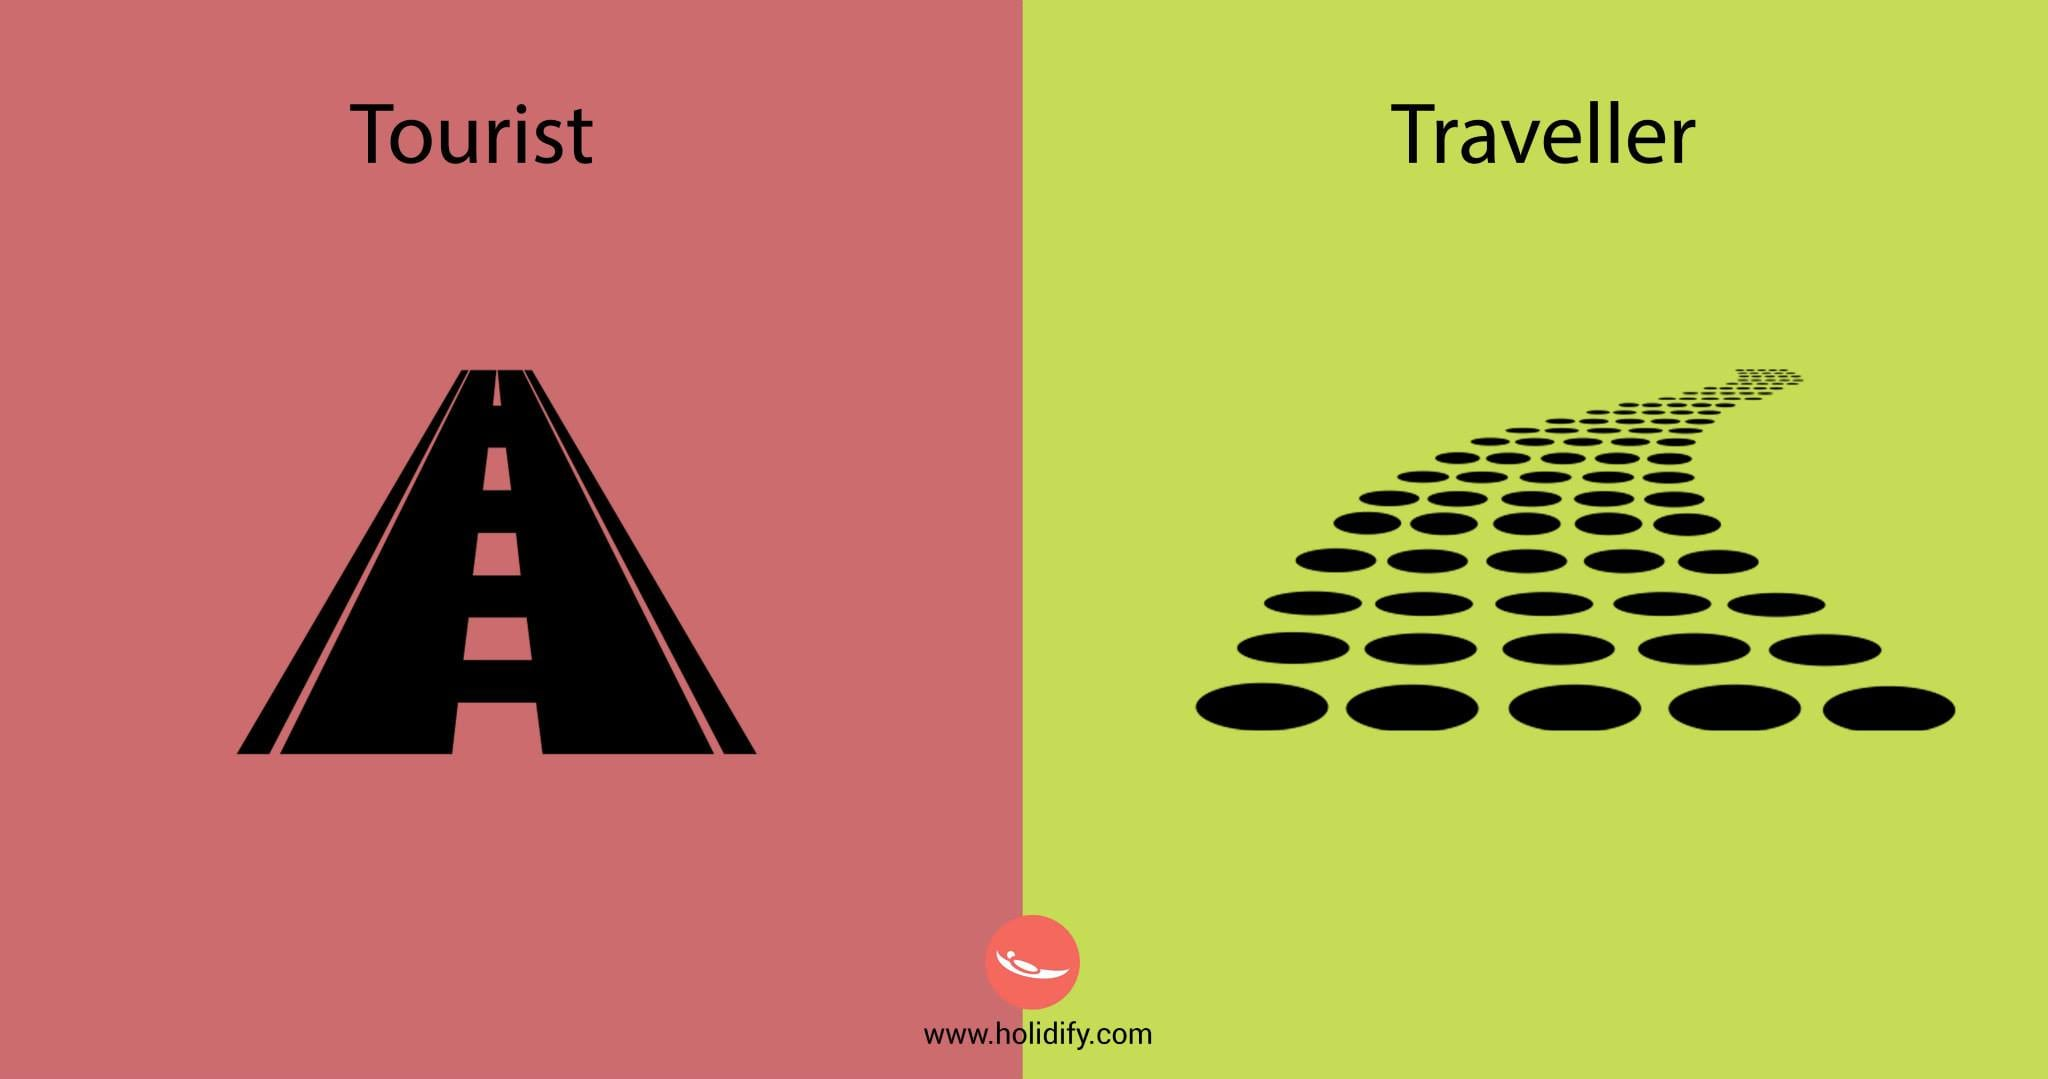 tourist-vs-traveller-freeyork-4